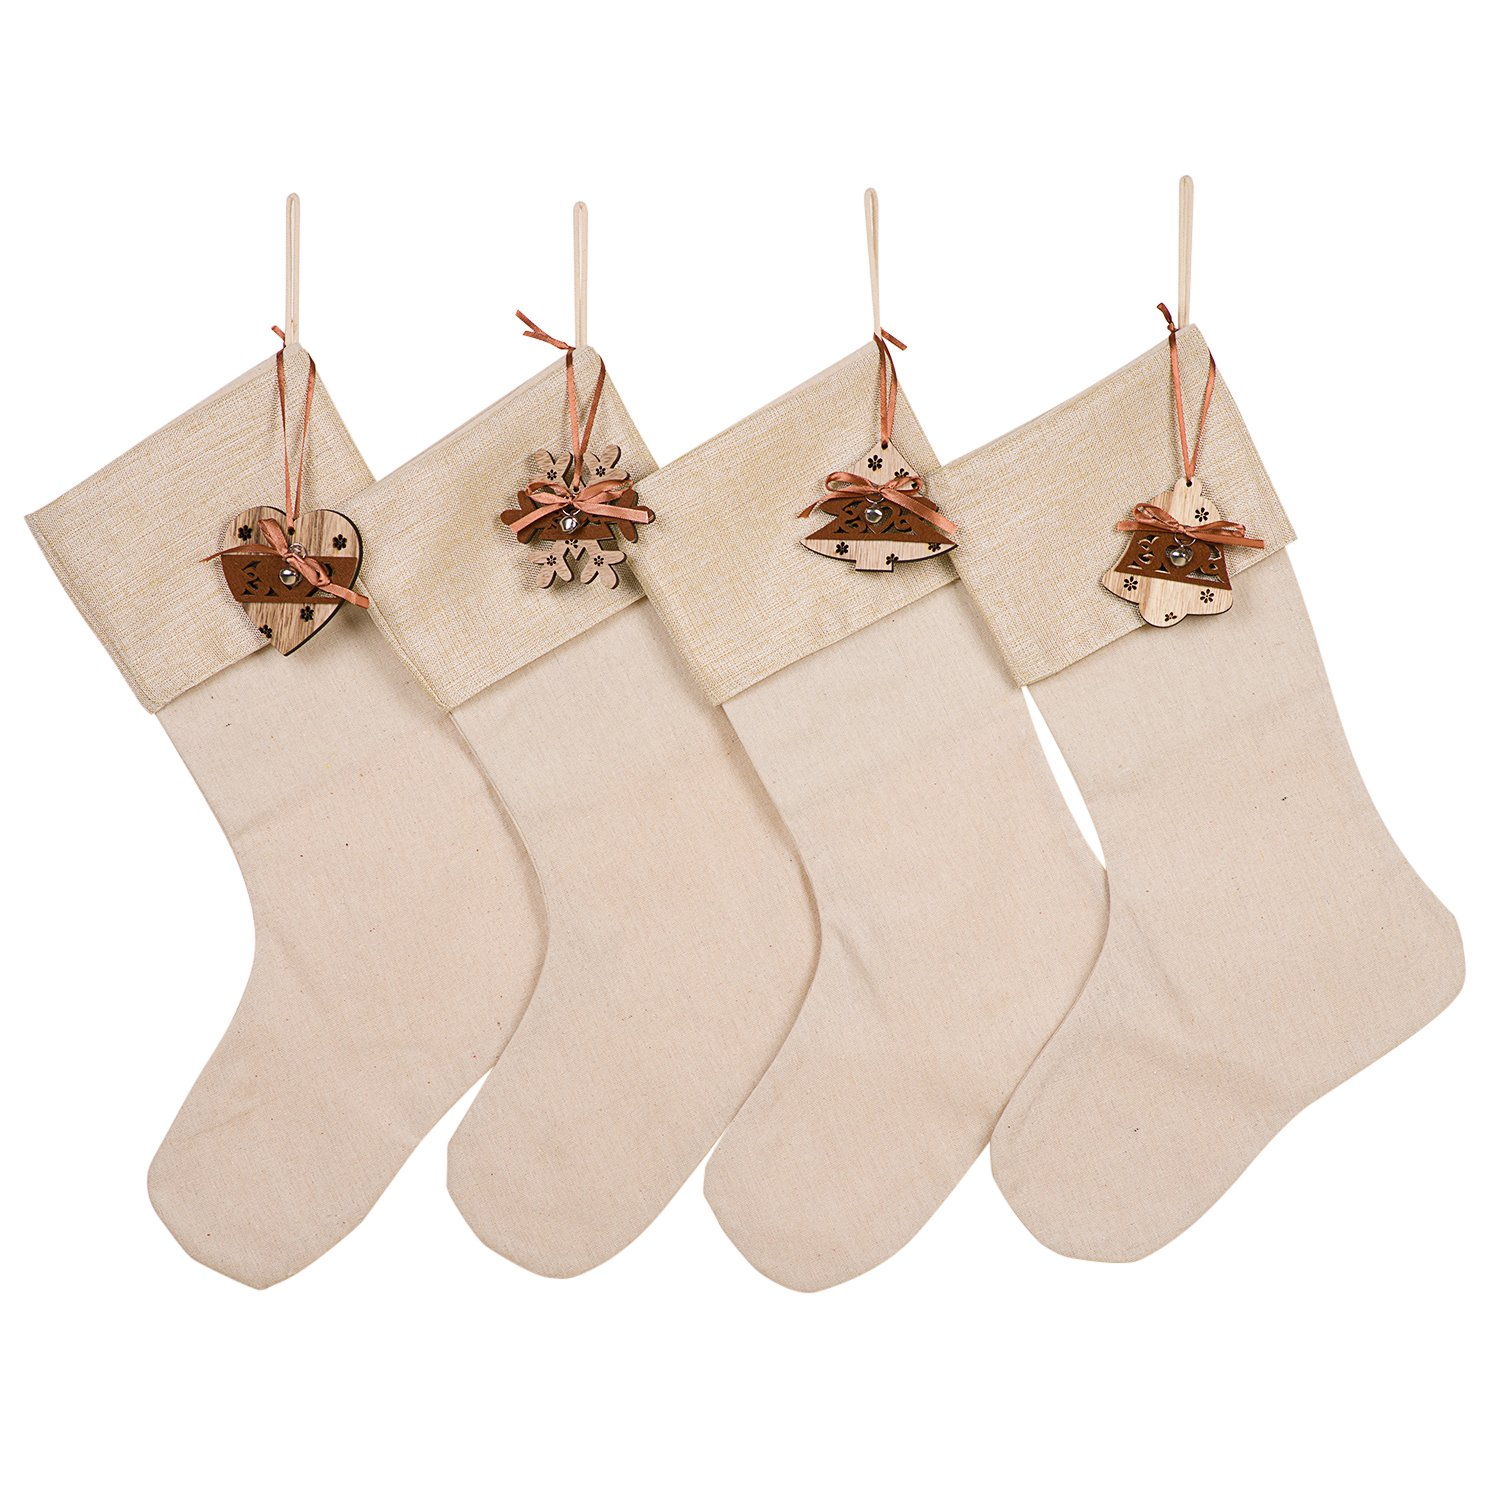 HUAN XUN Wood Heart Tree Snoflower Bell Set of 4 Christmas Stockings